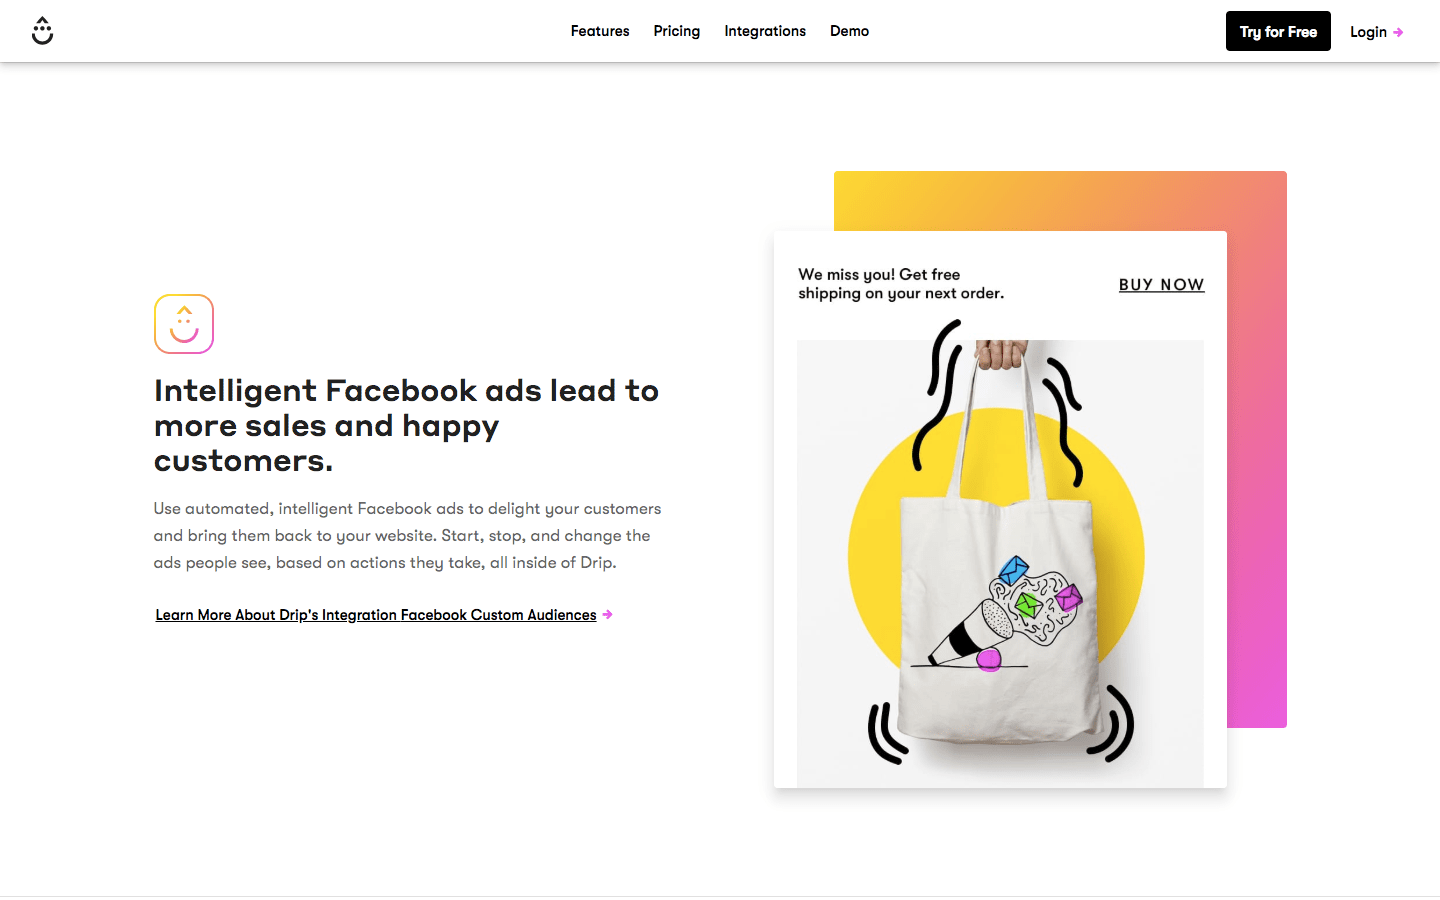 Facebook Ads section of Drip's homepage